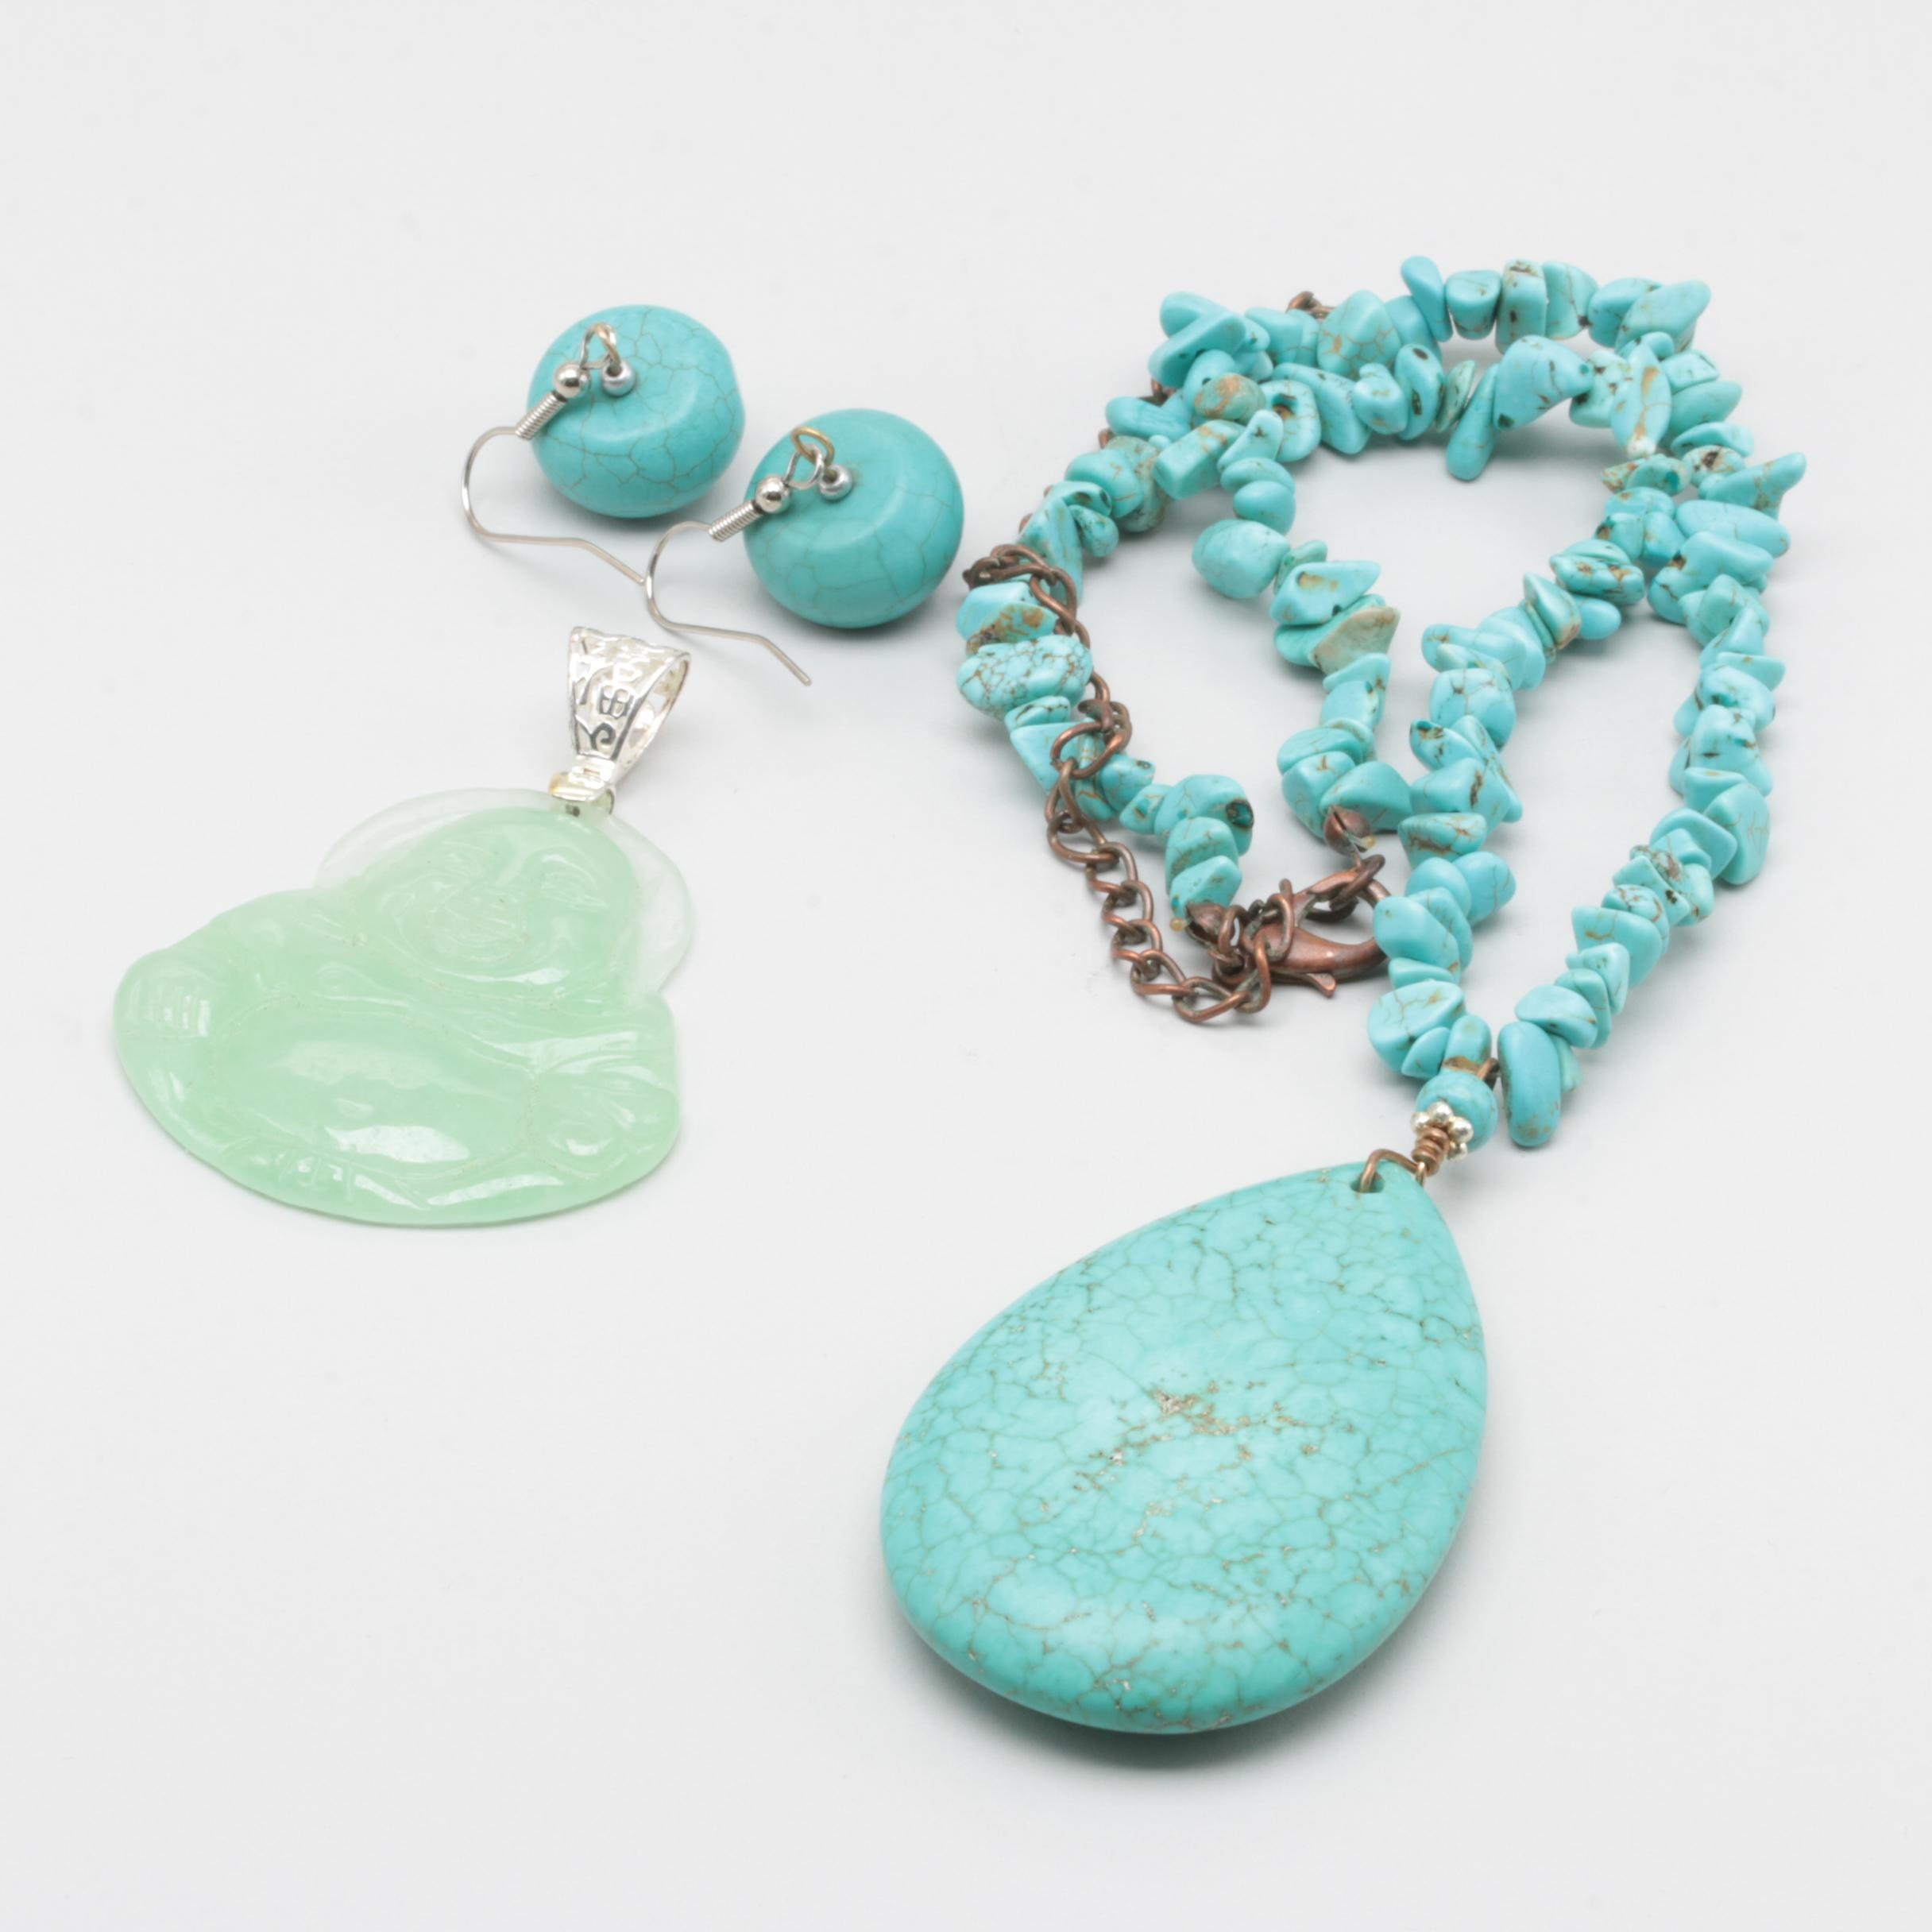 Sterling Silver Howlite Demi Parure and Carved Jadeite Buddha Pendant